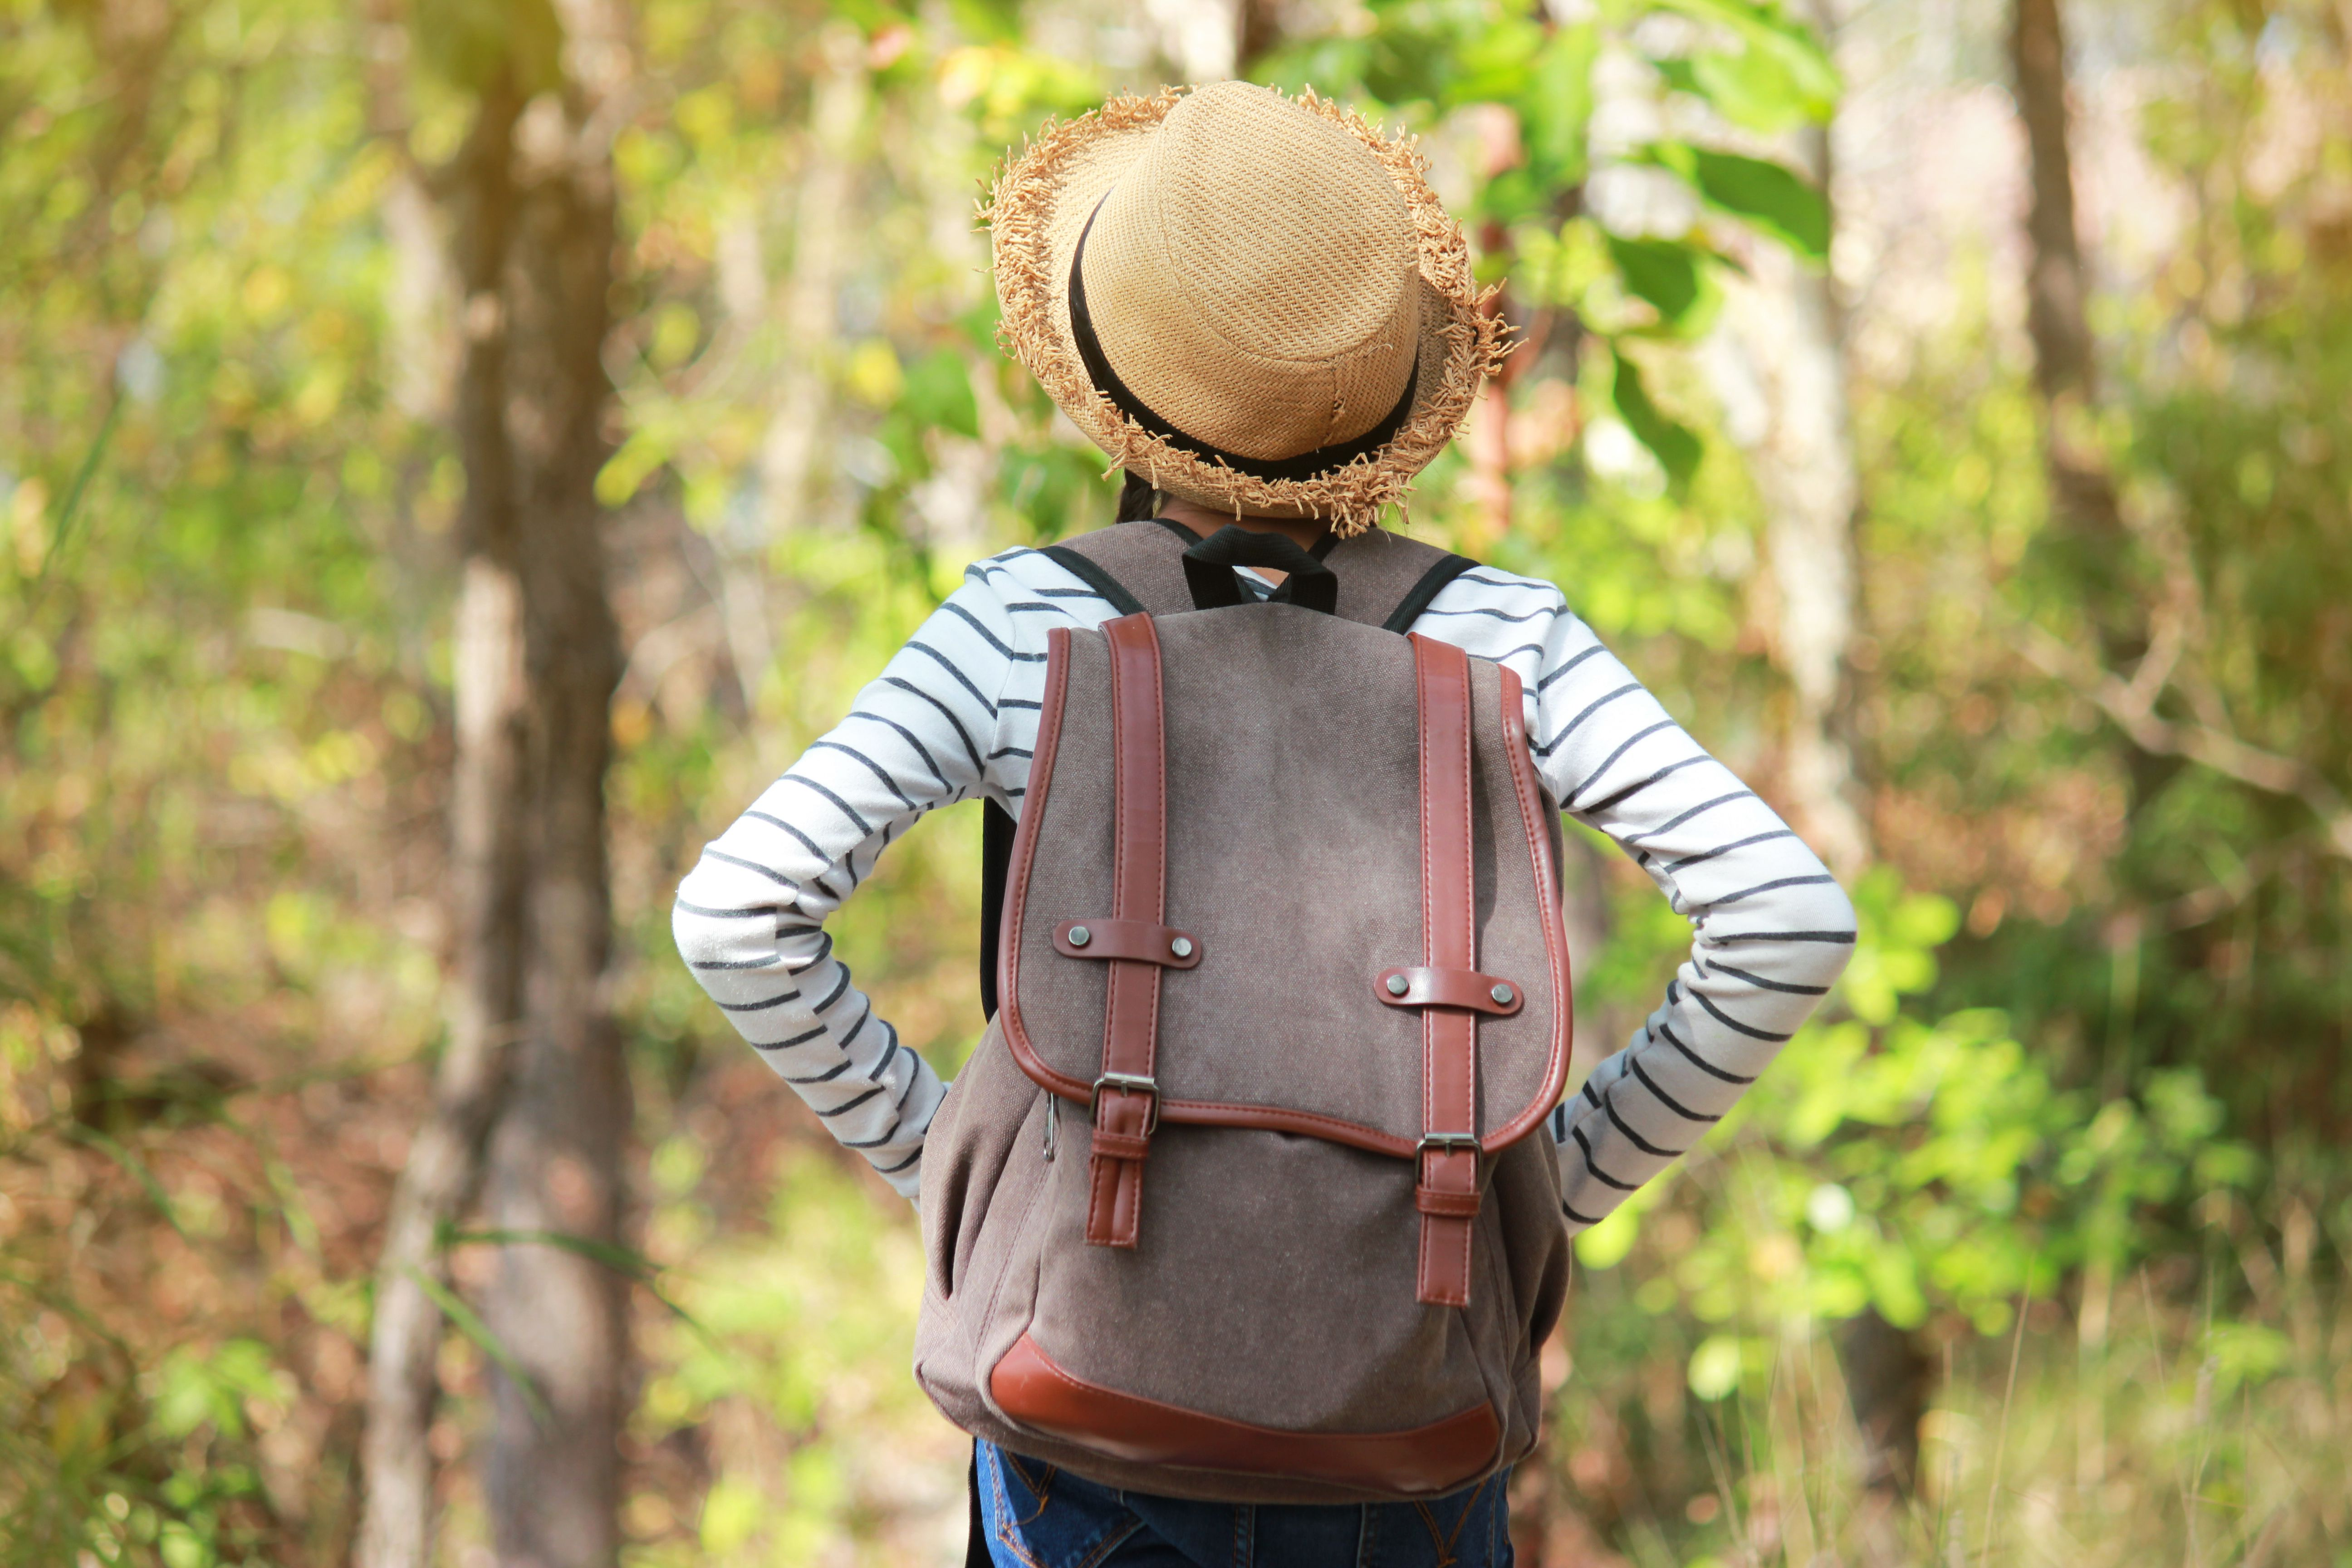 546205ee7aa7 Center the Backpack Load. Rear View Of Girl Carrying ...